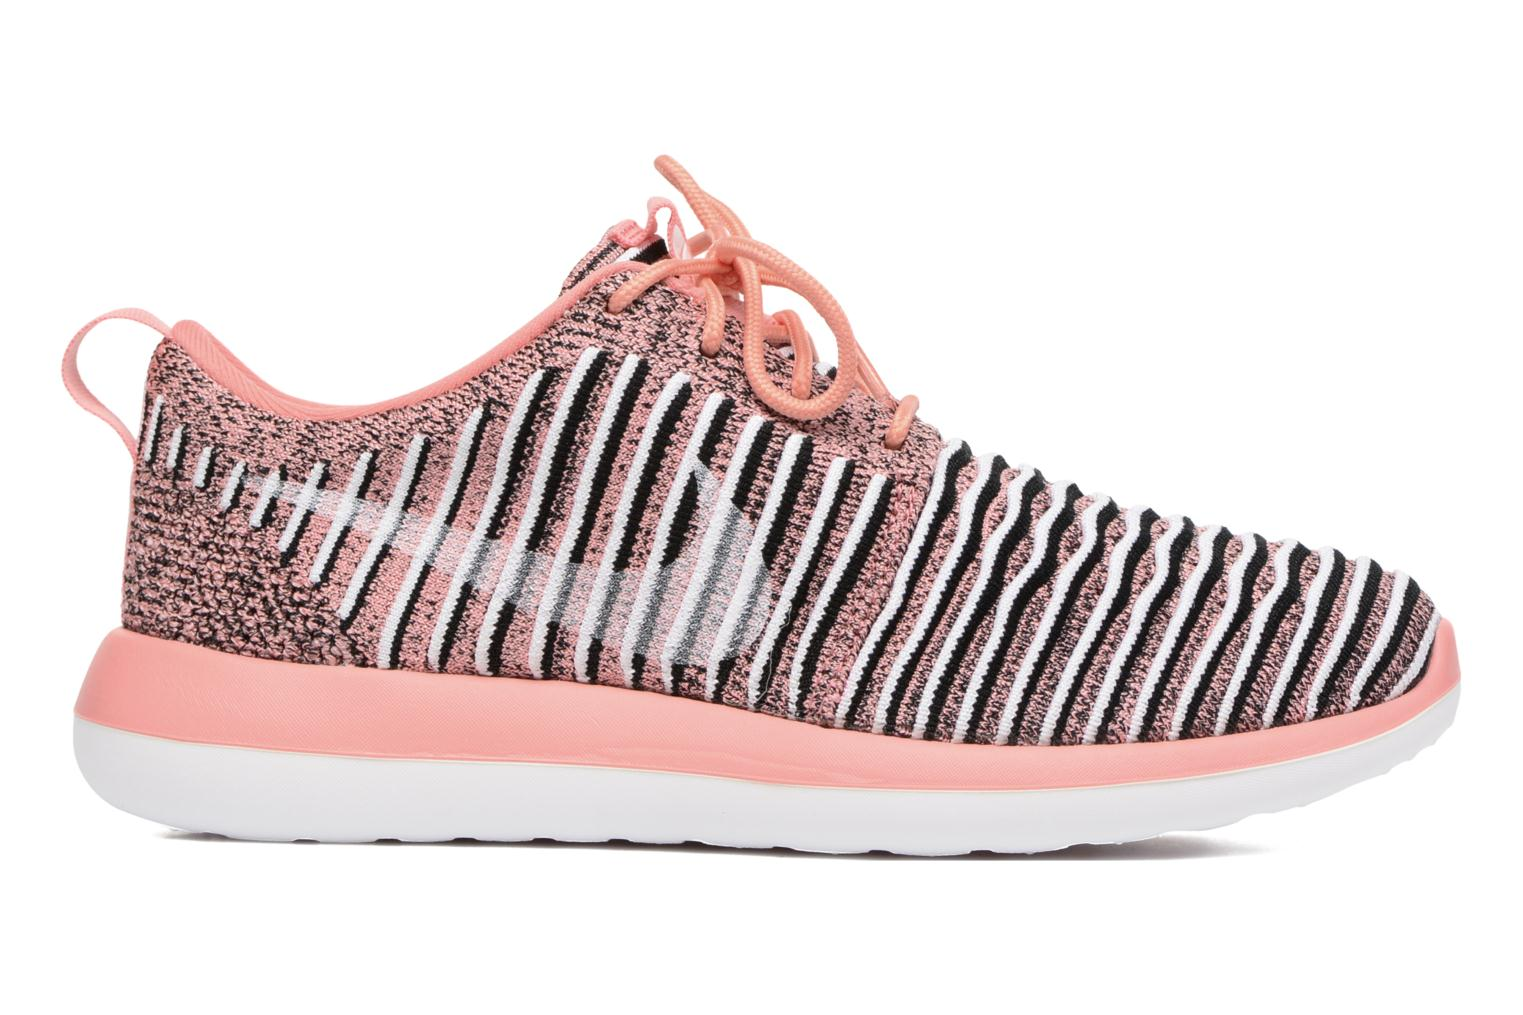 W Nike Roshe Two Flyknit Bright Melon/White-Black